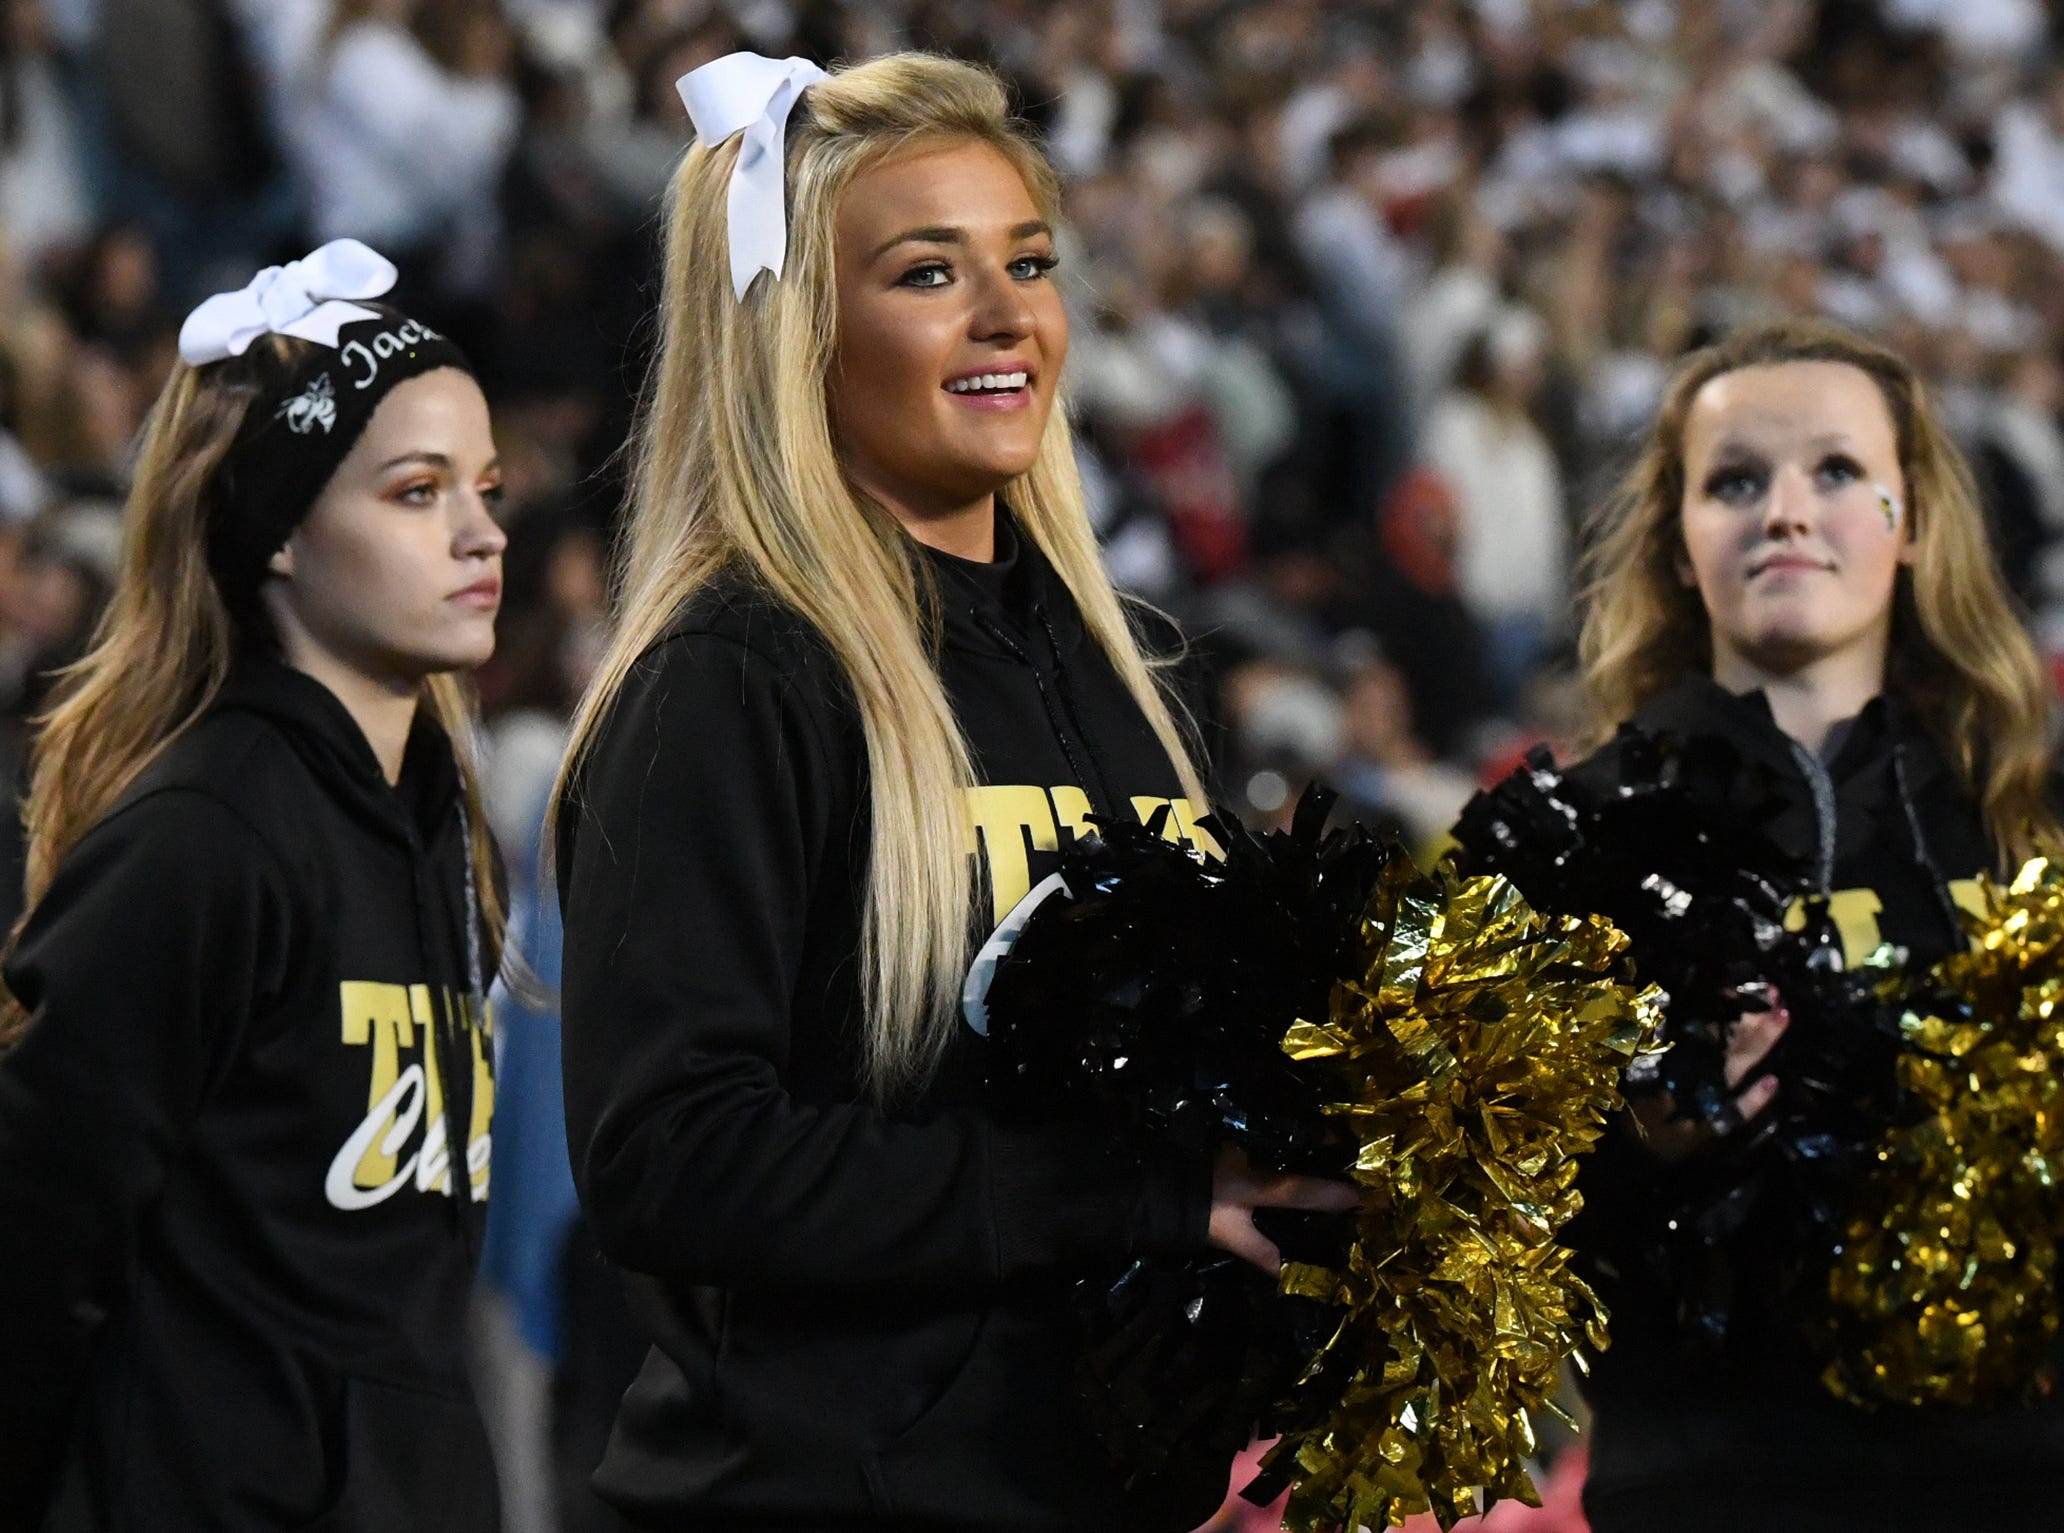 TL Hanna High School cheerleaders for their team playing Dutch Fork High School during the second quarter of the Class AAAAA state championship game at Williams-Brice Stadium in Columbia Saturday, December 8, 2018.